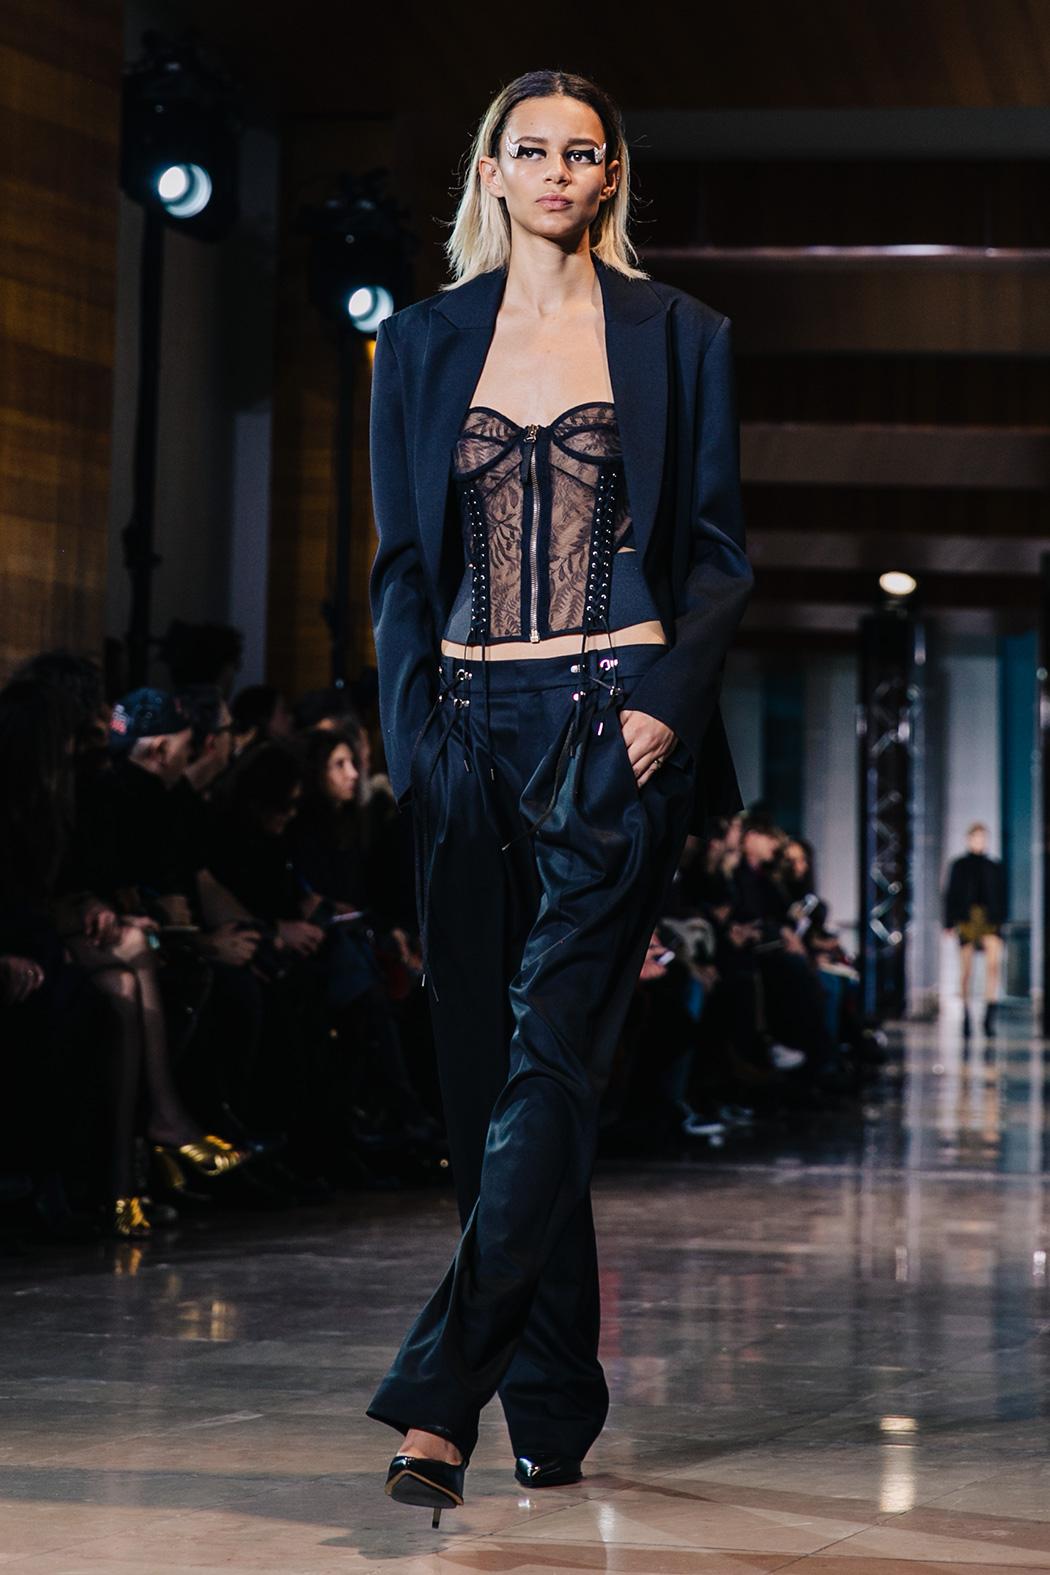 Paris_Fashion_Week-PFW-Anthony_Vaccarello_Fall_2016-Runway-10